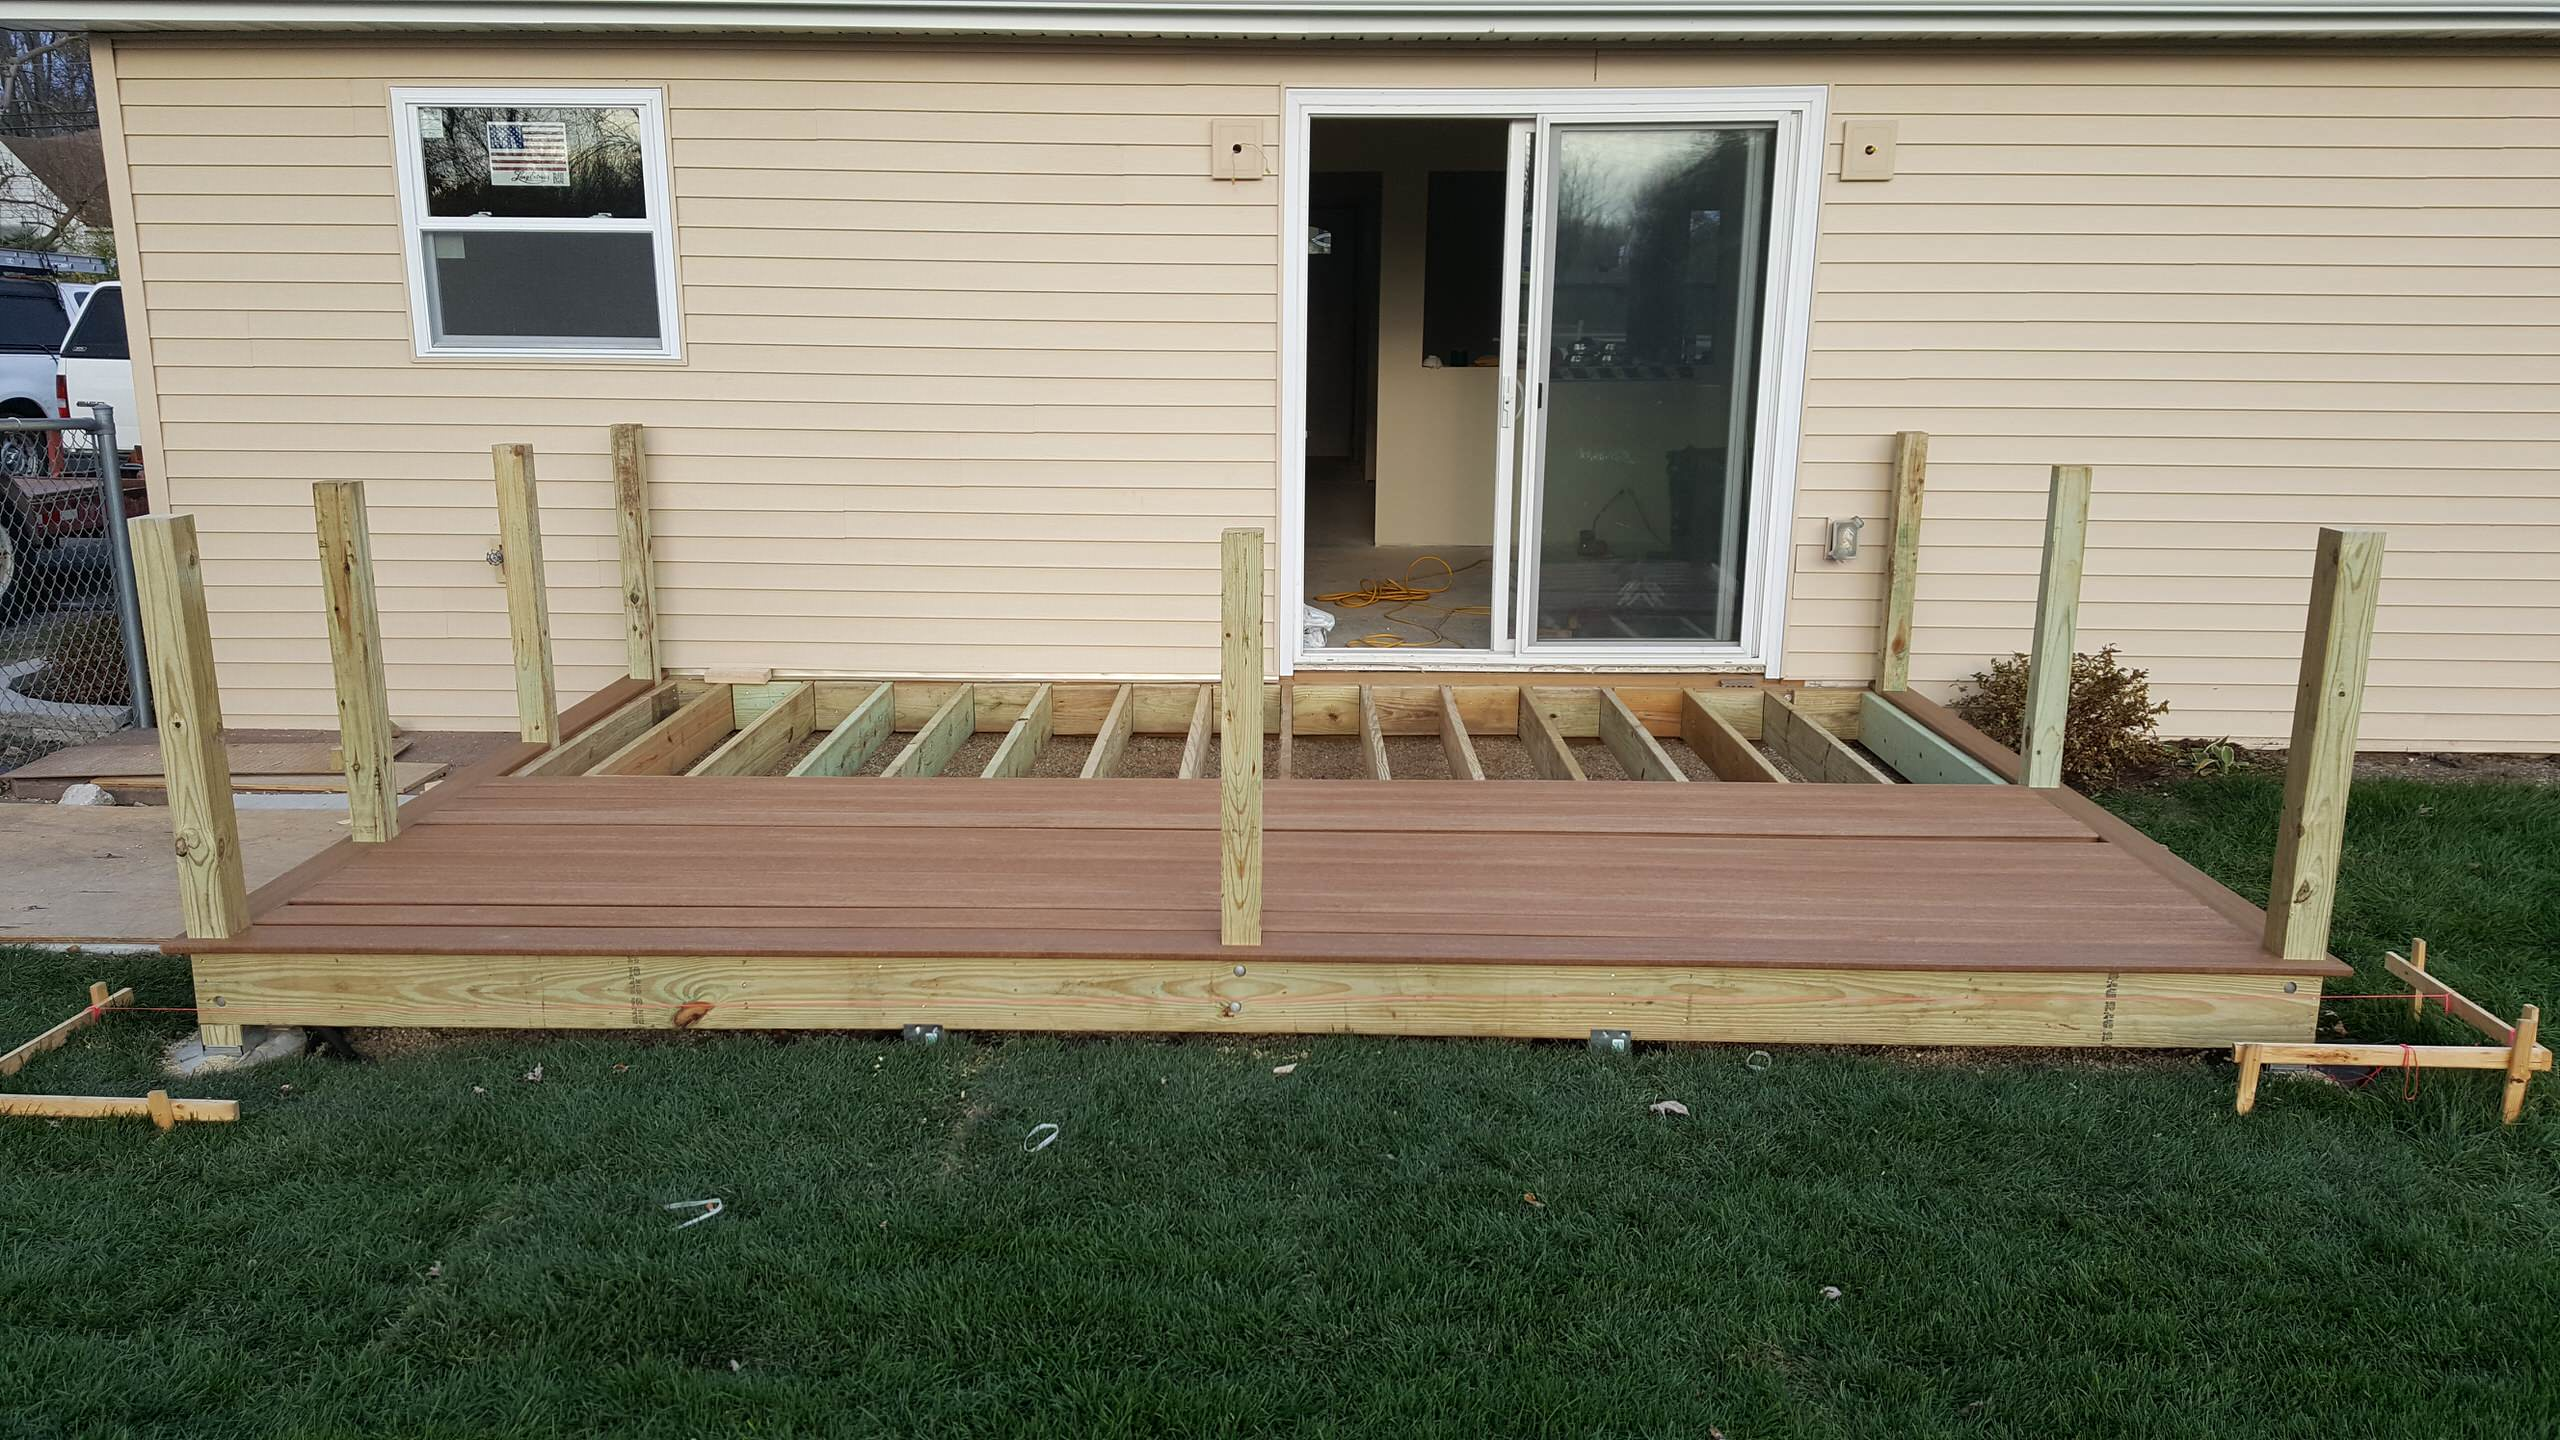 Composite decking, new siding, windows and sliding glass door